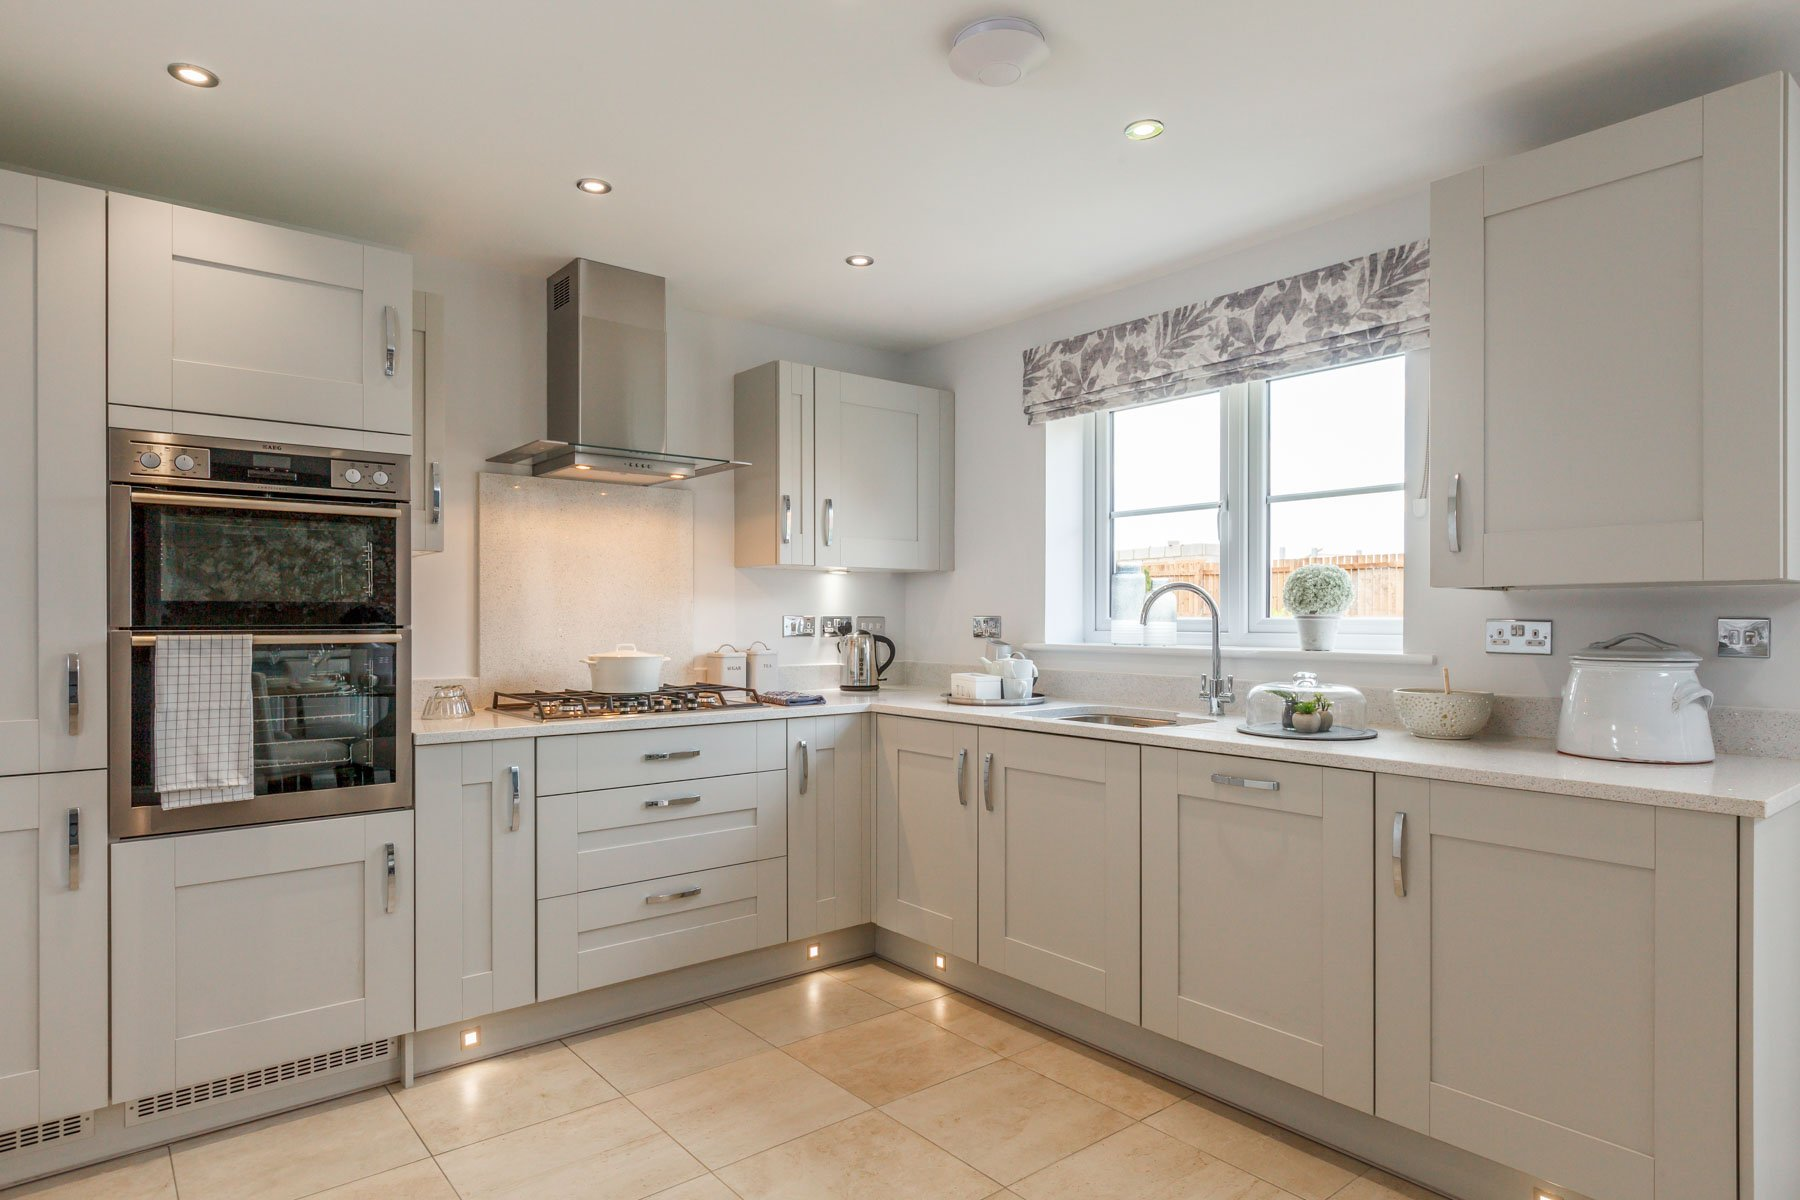 TW Exeter - Mountbatten Mews - Midford example kitchen